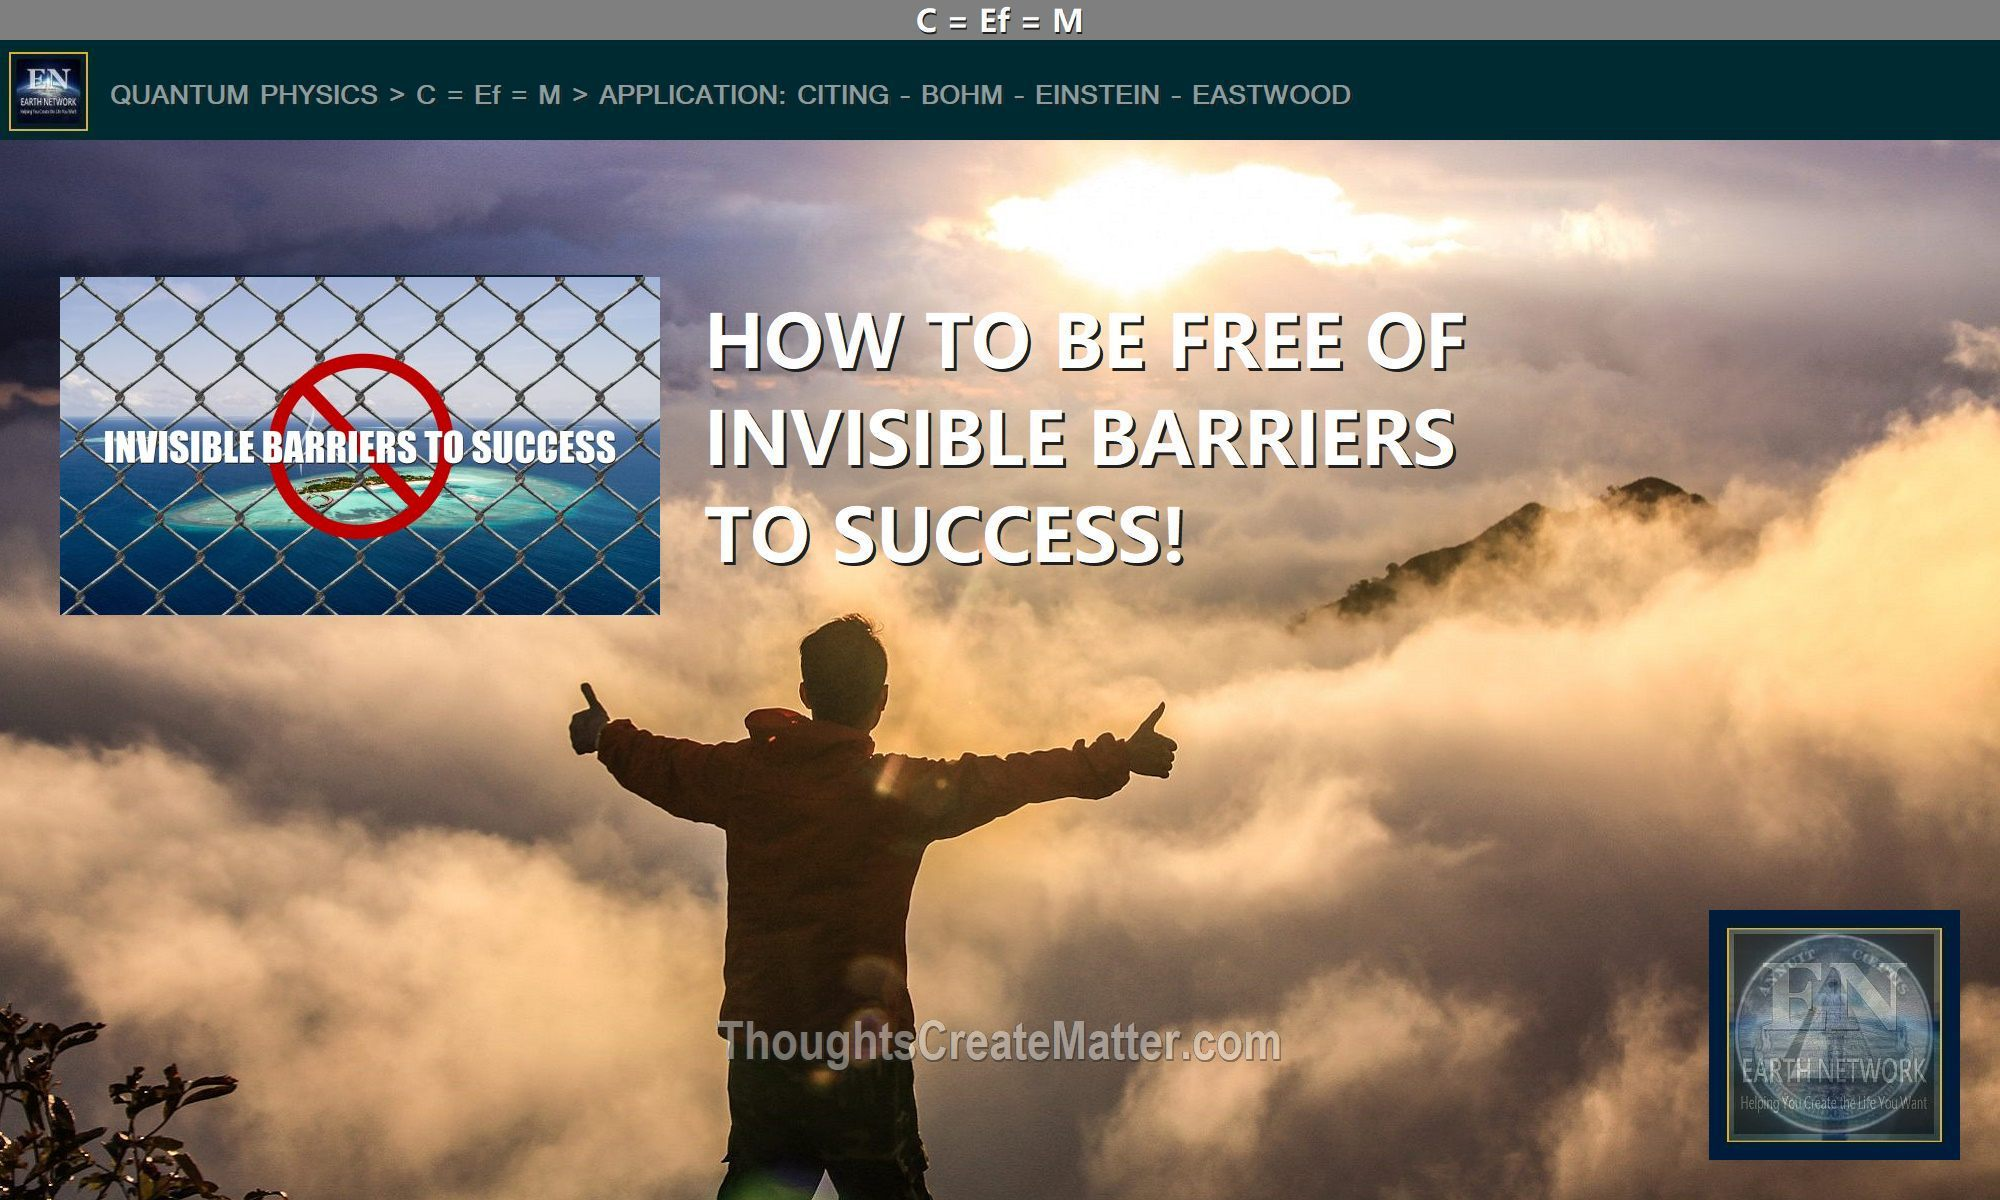 what-are-invisible-barriers-to-success-causes-of-my-problems-the-pestilence-internal-parasite-free-from-destructive-patterns-imprinting-2000